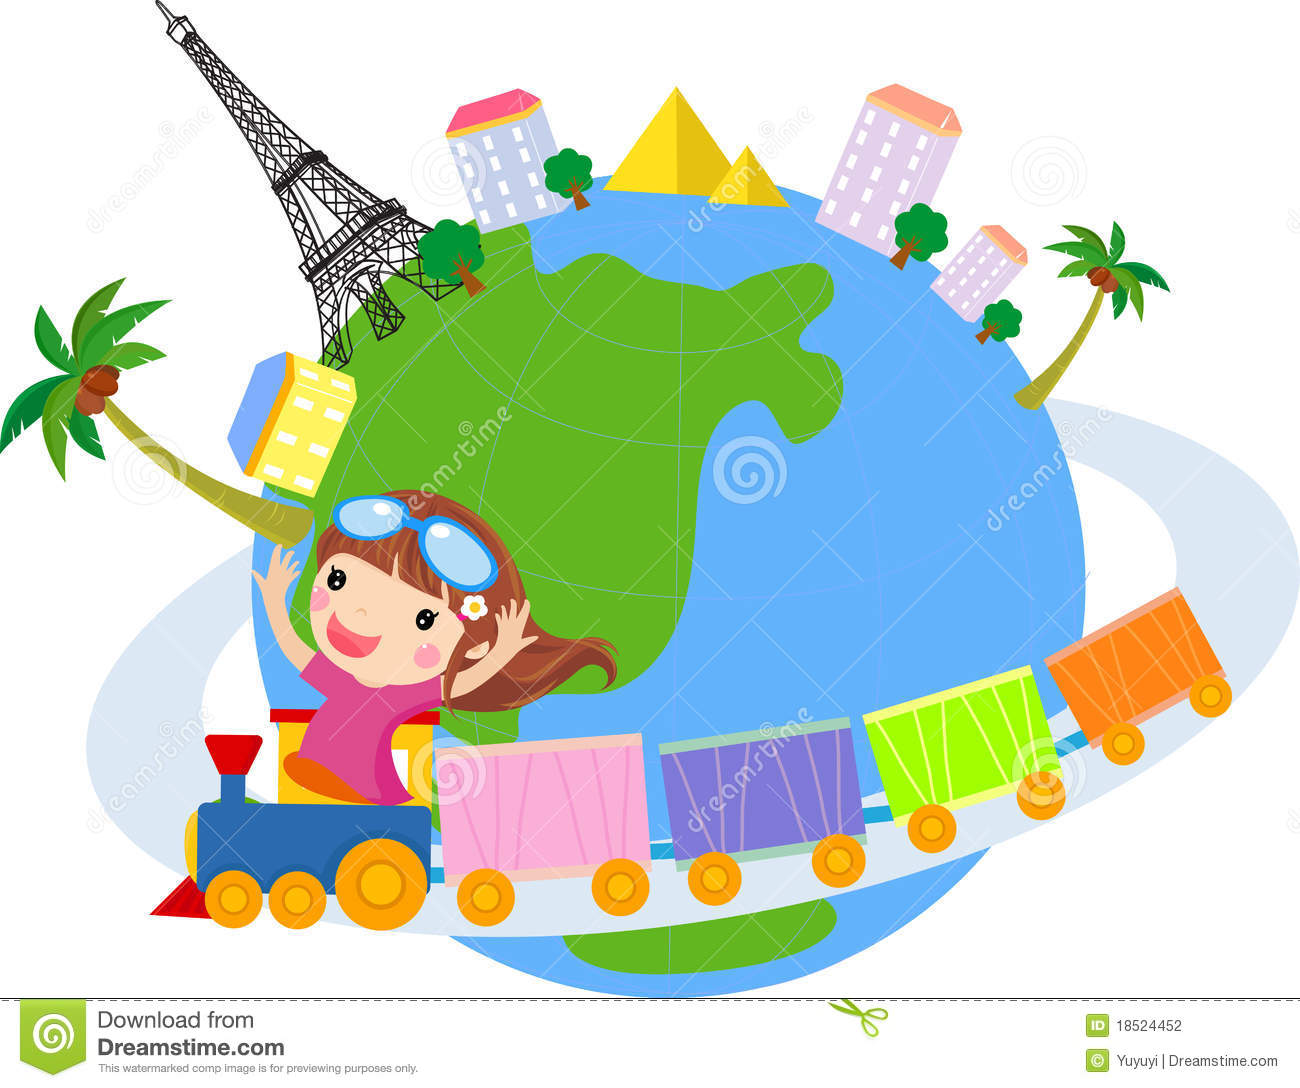 Travel around the world clipart graphic freeuse library 49+ Around The World Clipart | ClipartLook graphic freeuse library